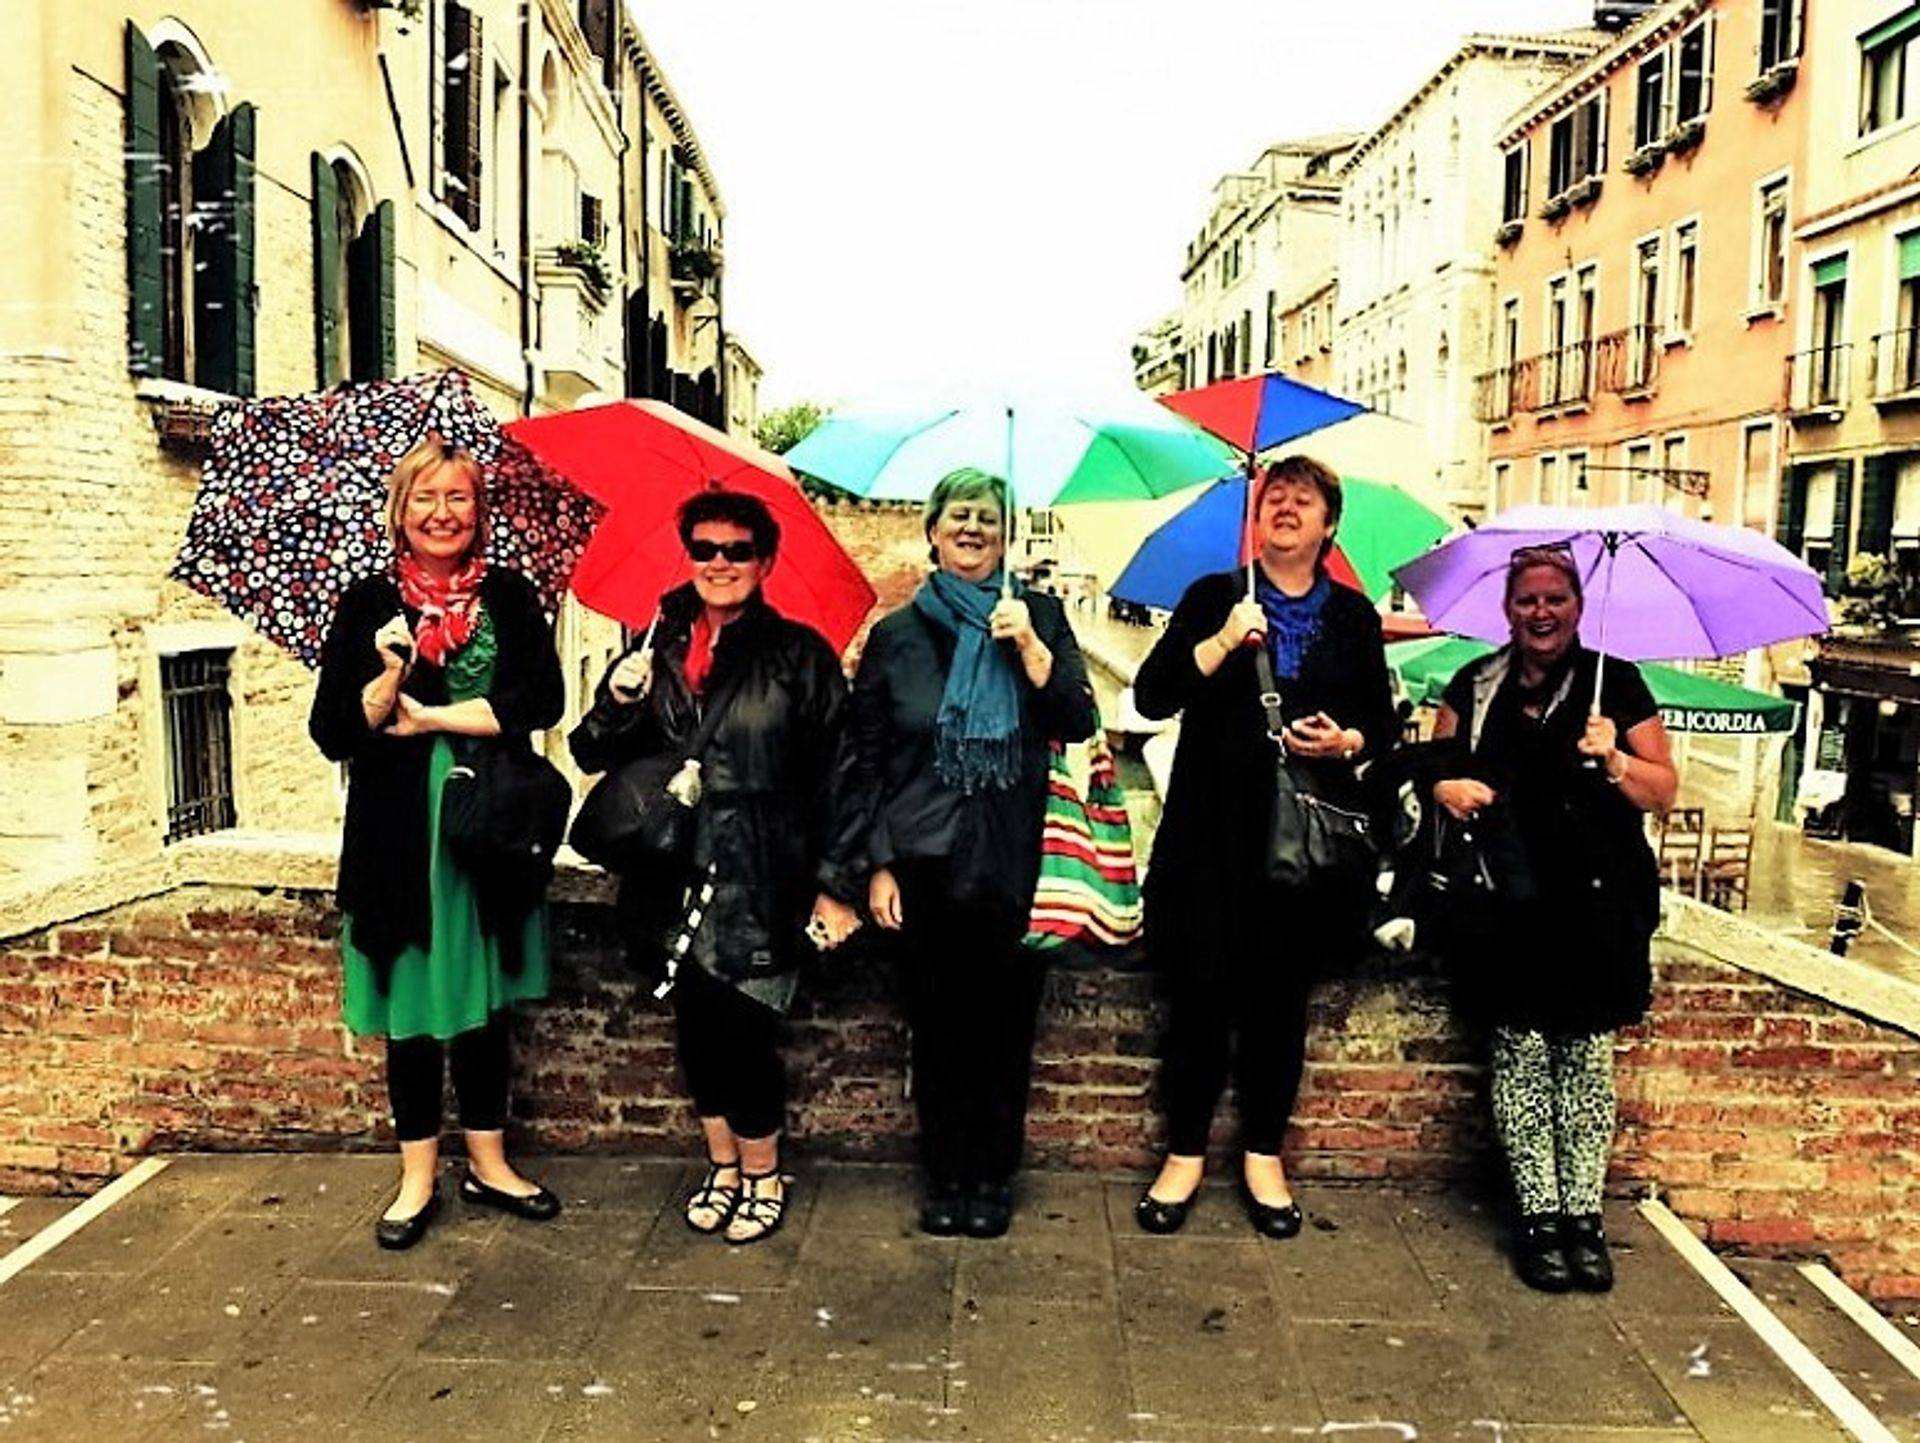 "<img src=""australian womens travel.jpg alt=womens tour group with umbrellas venice italy"">"